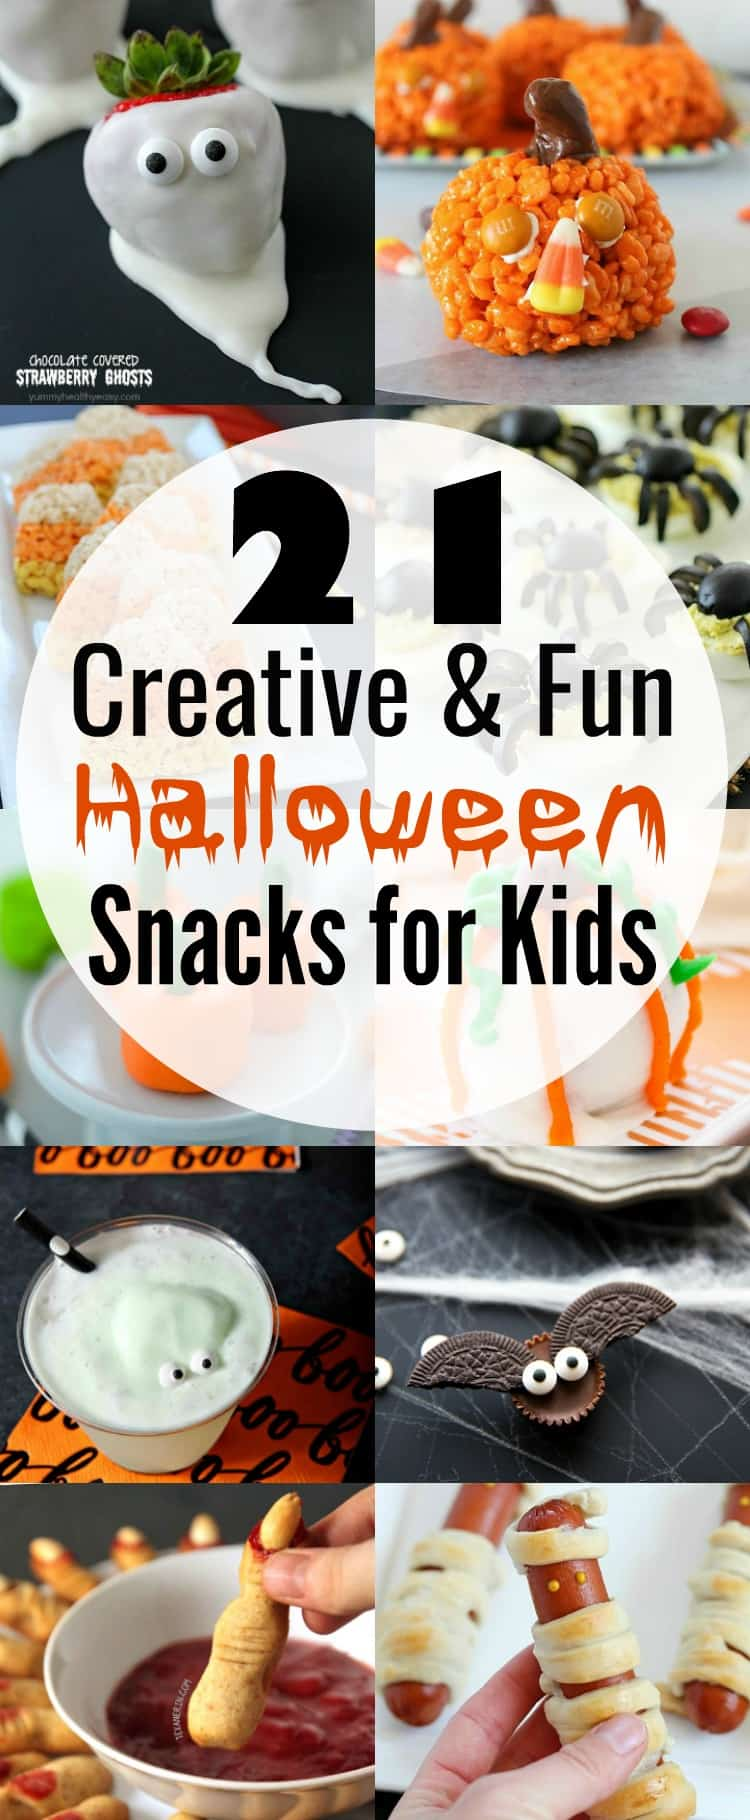 Your little ghouls will love these 21 insanely adorable Halloween snacks that are kid-tested and approved! Any of these easy creations will be the hit of the Halloween party! via @jennikolaus